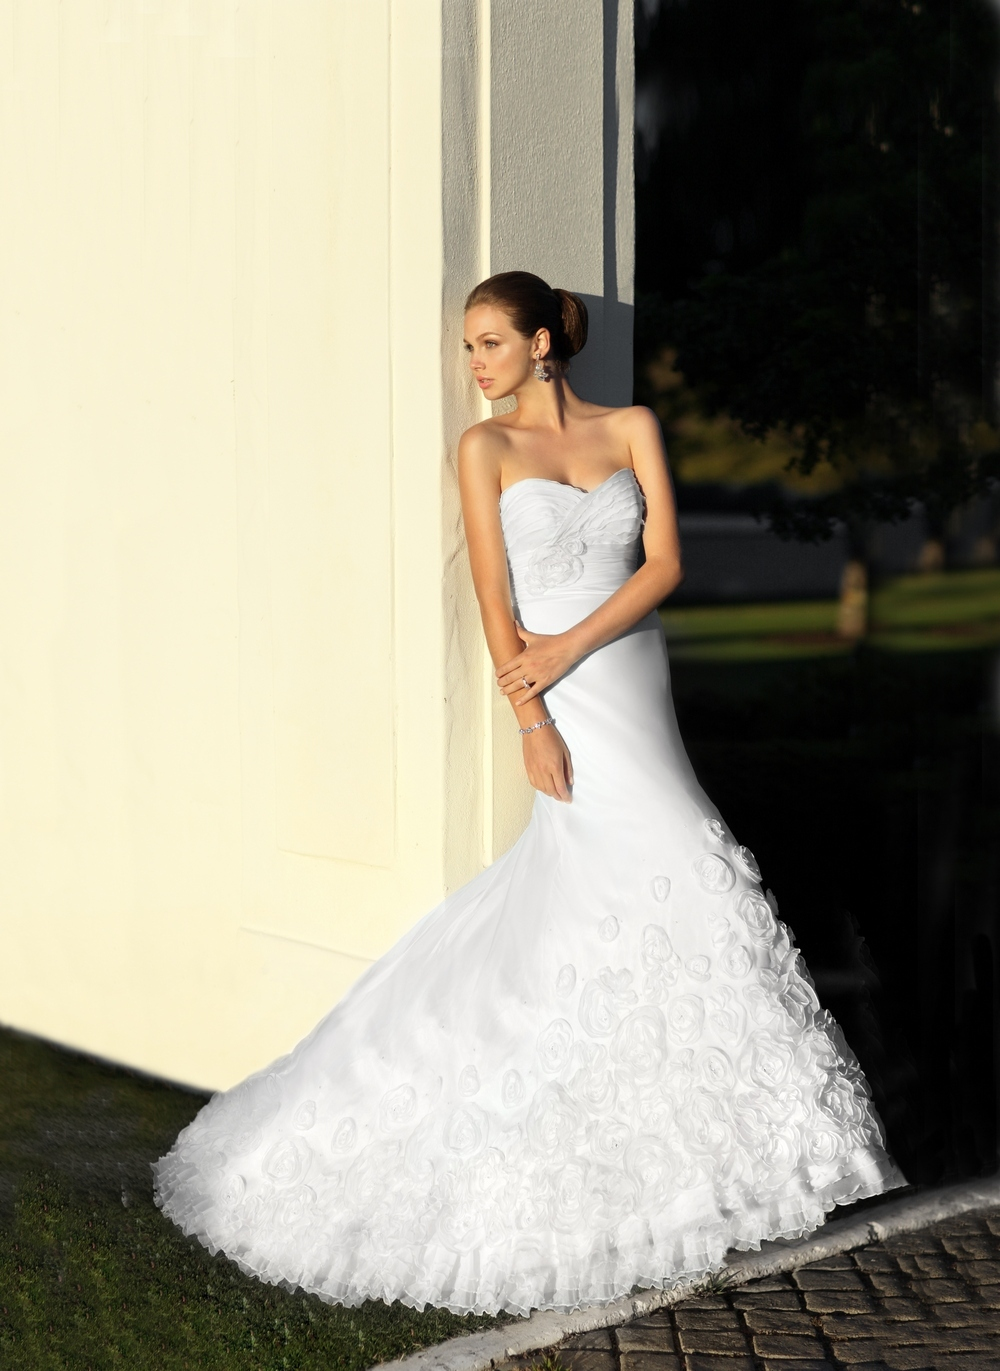 Essense-of-australia-wedding-dresses-2010-2011-d1073-side.full